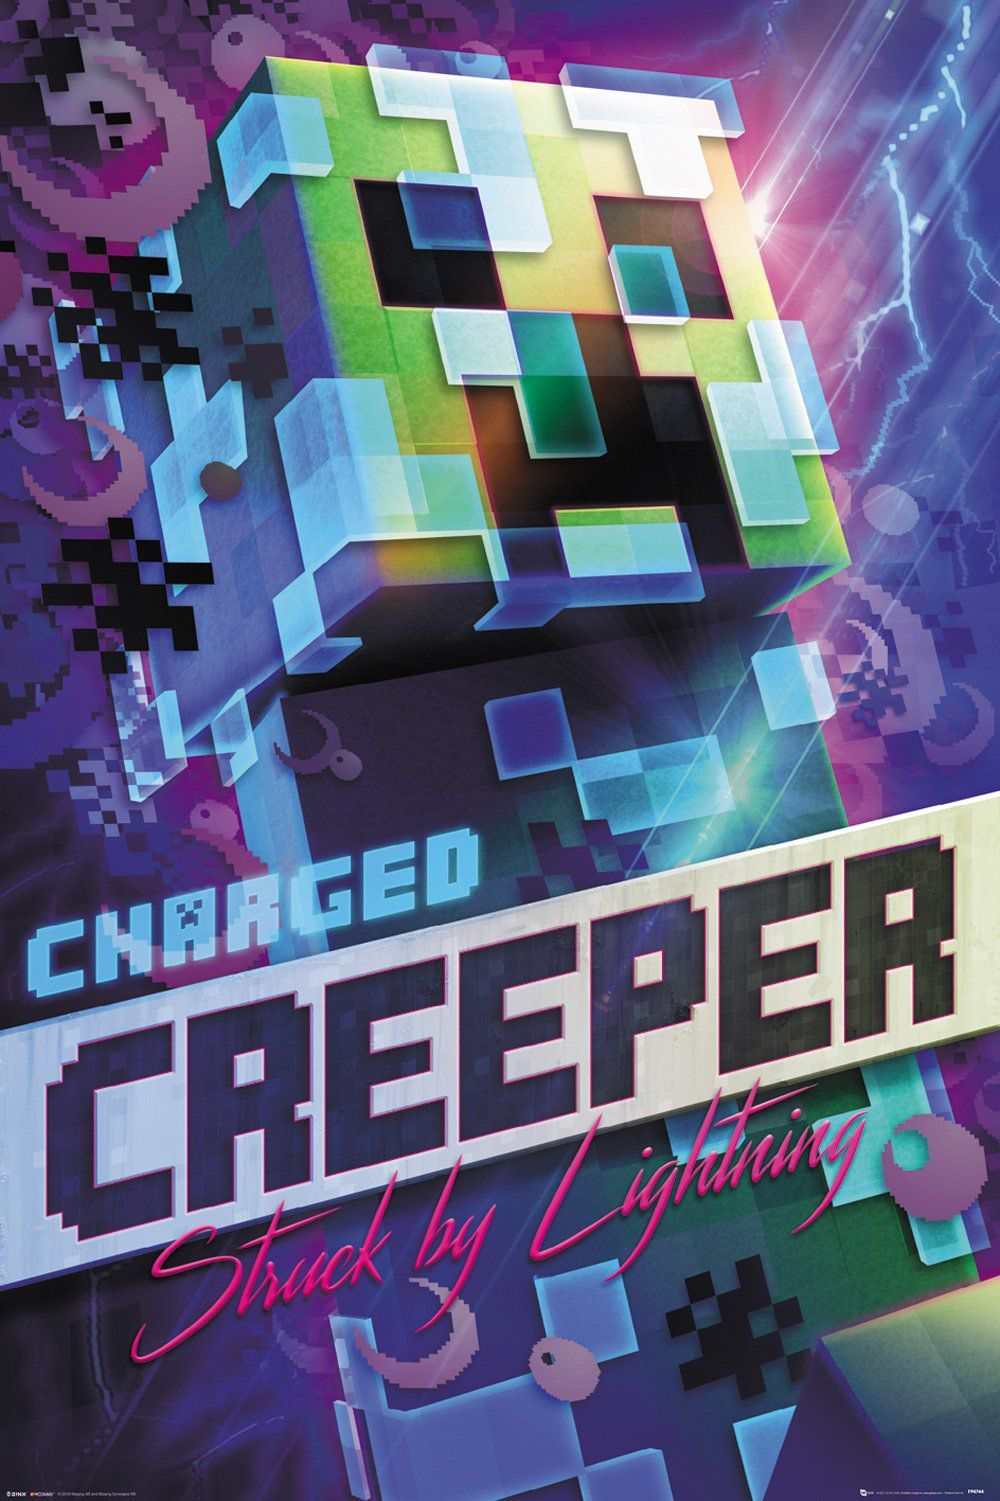 Minecraft Poster Charged Creeper Charged Creeper Minecraft Minecraft Fondos Poster In 2020 Minecraft Posters Minecraft Pictures Minecraft Images